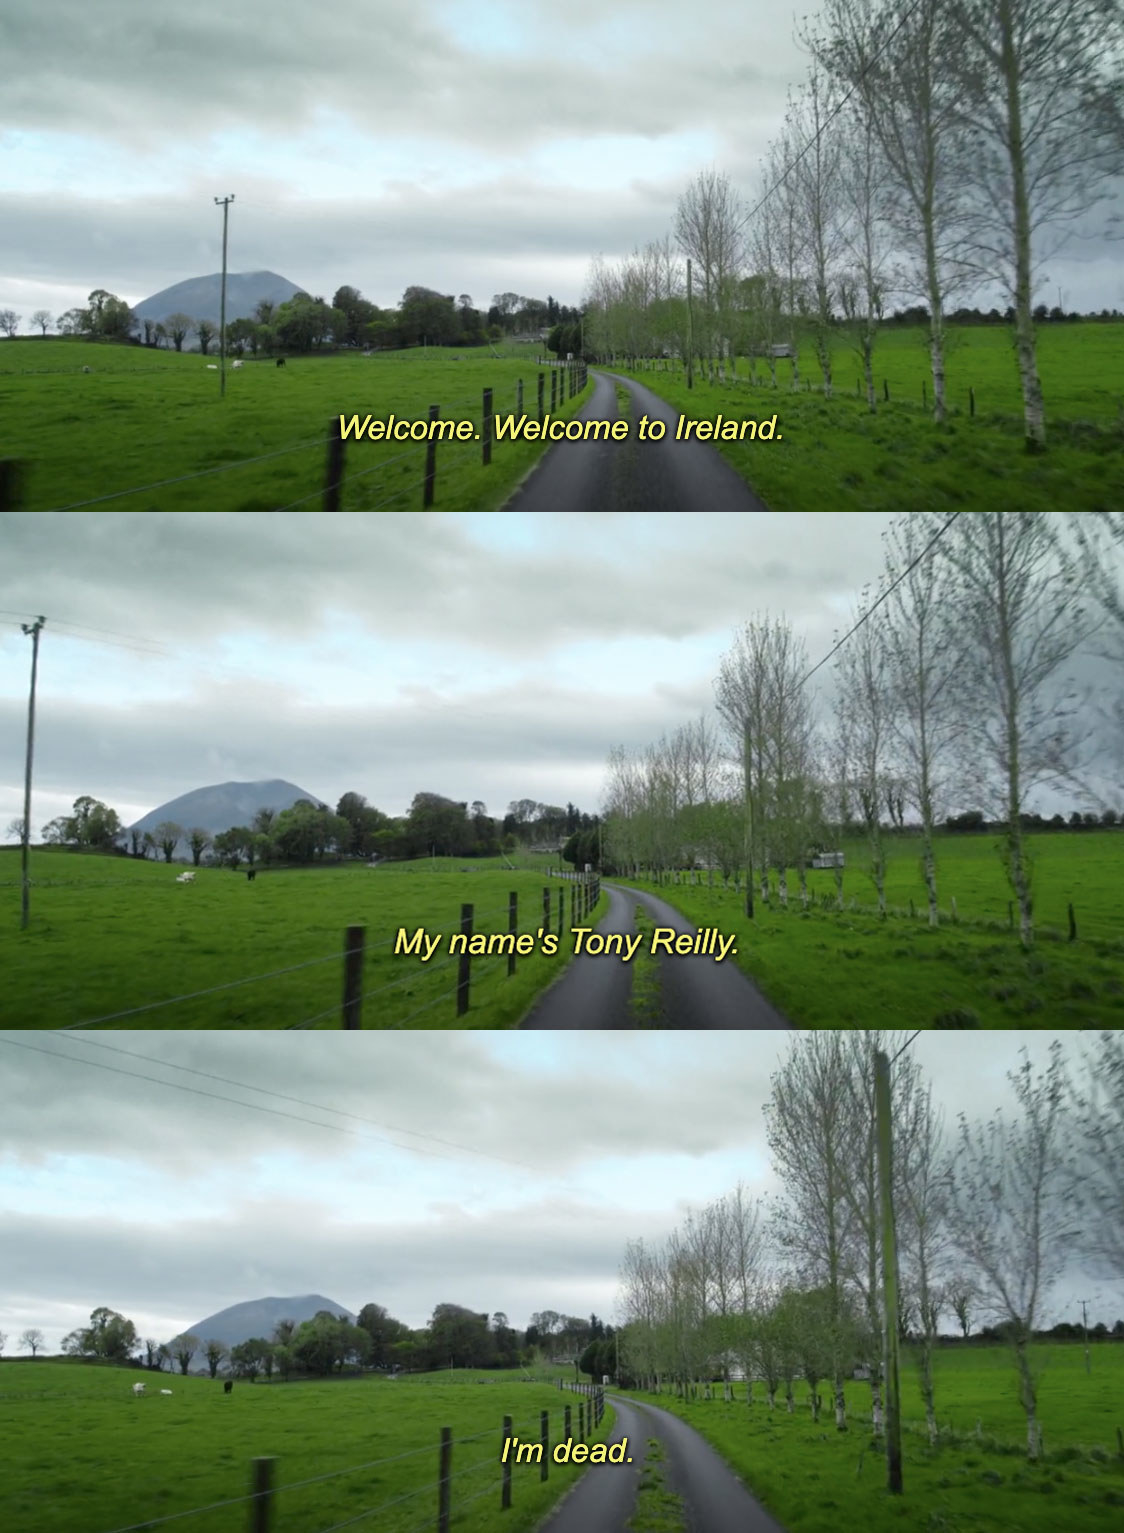 """Shots of a road winding between green fields, with the text """"Welcome. Welcome to Ireland. My name's Tony Reilly. I'm dead."""""""